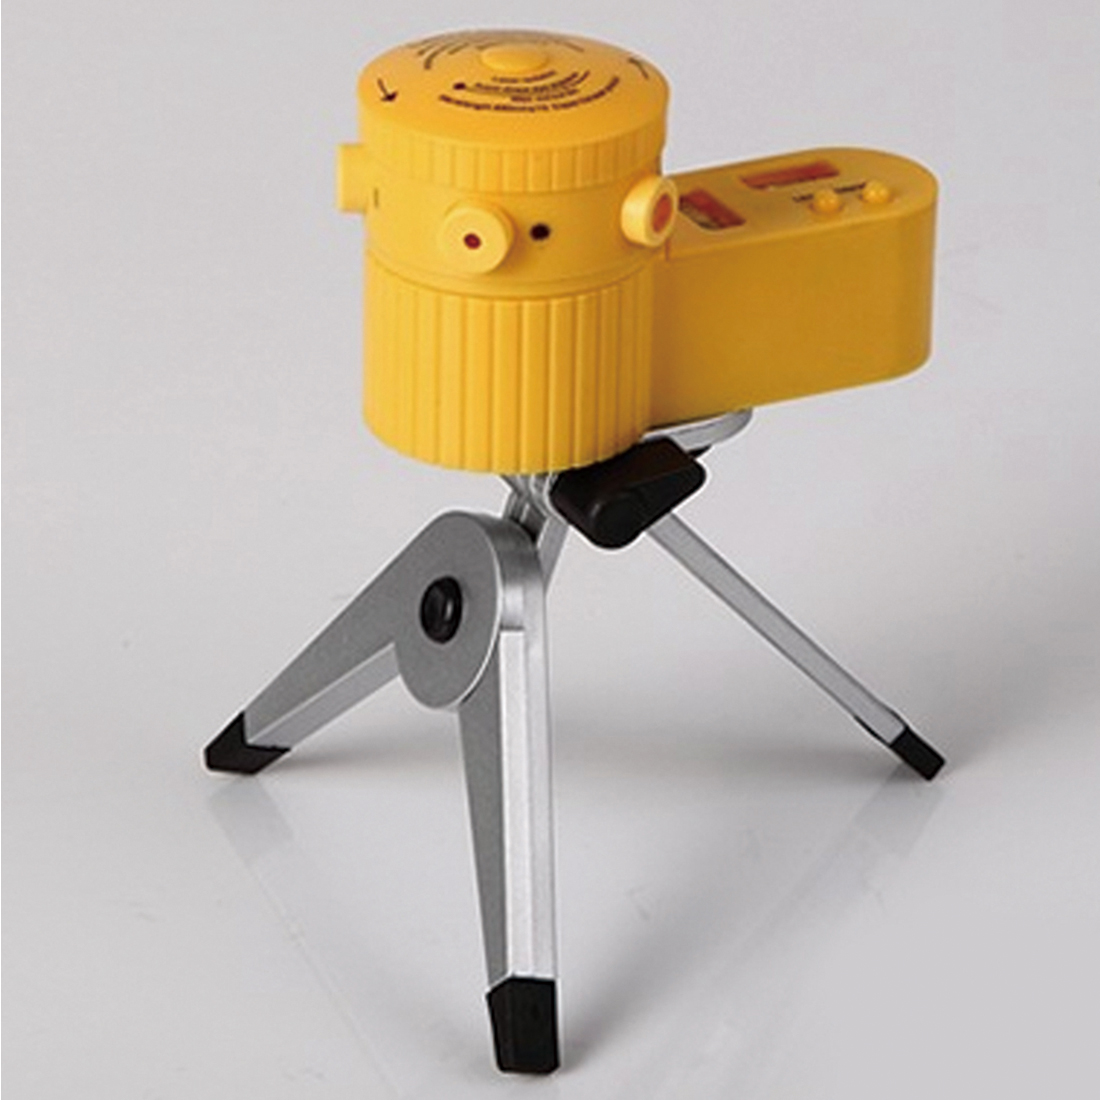 Vertical Horizontal Line Tool With Tripod Worldwide Laser Level Leveler Multifunction Cross